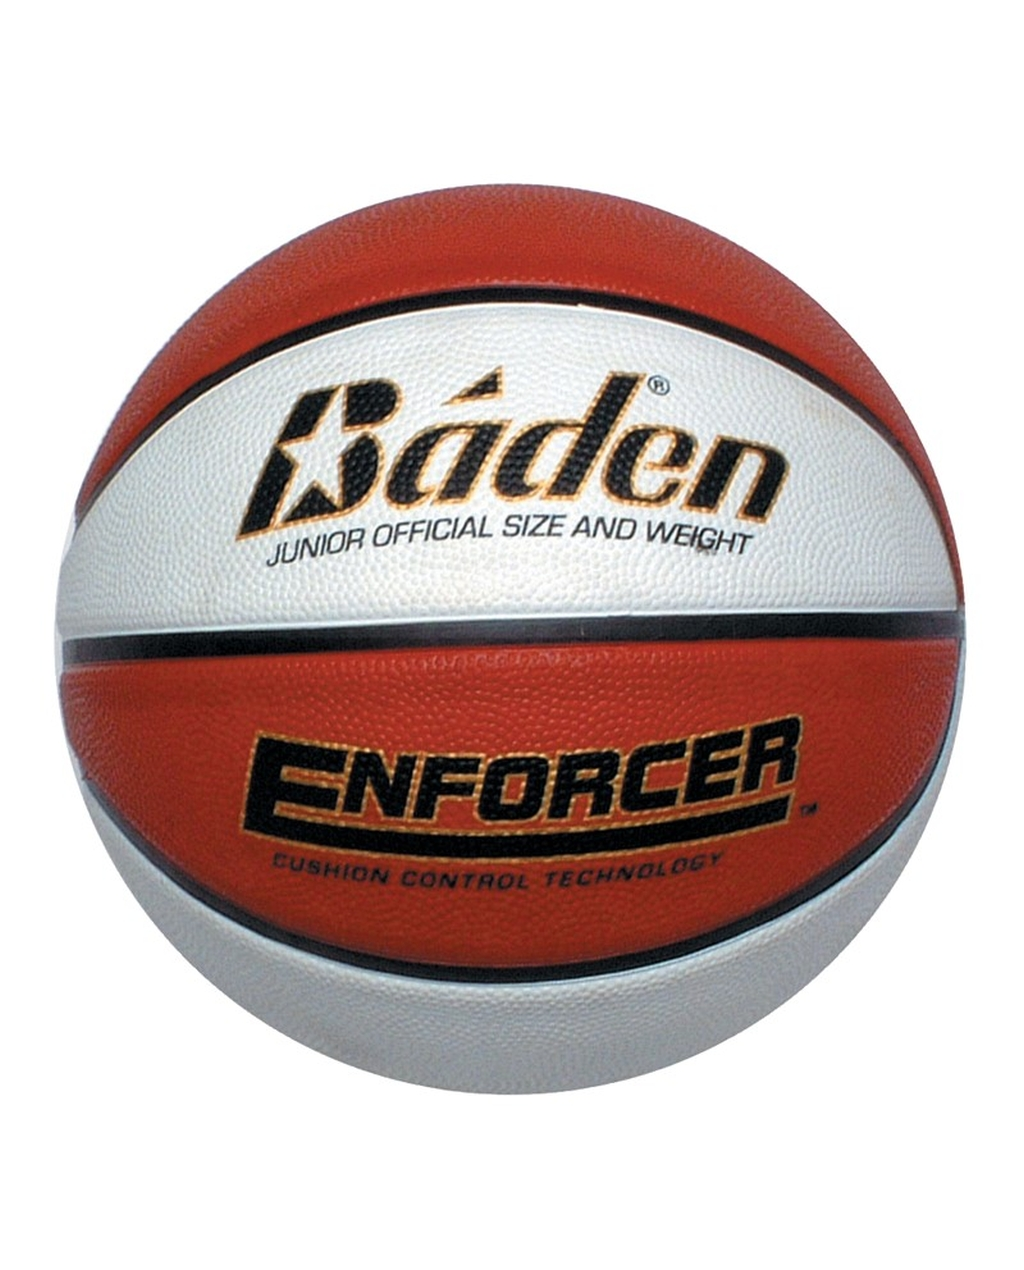 Enforcer Tan & Cream Basketball - Size 7